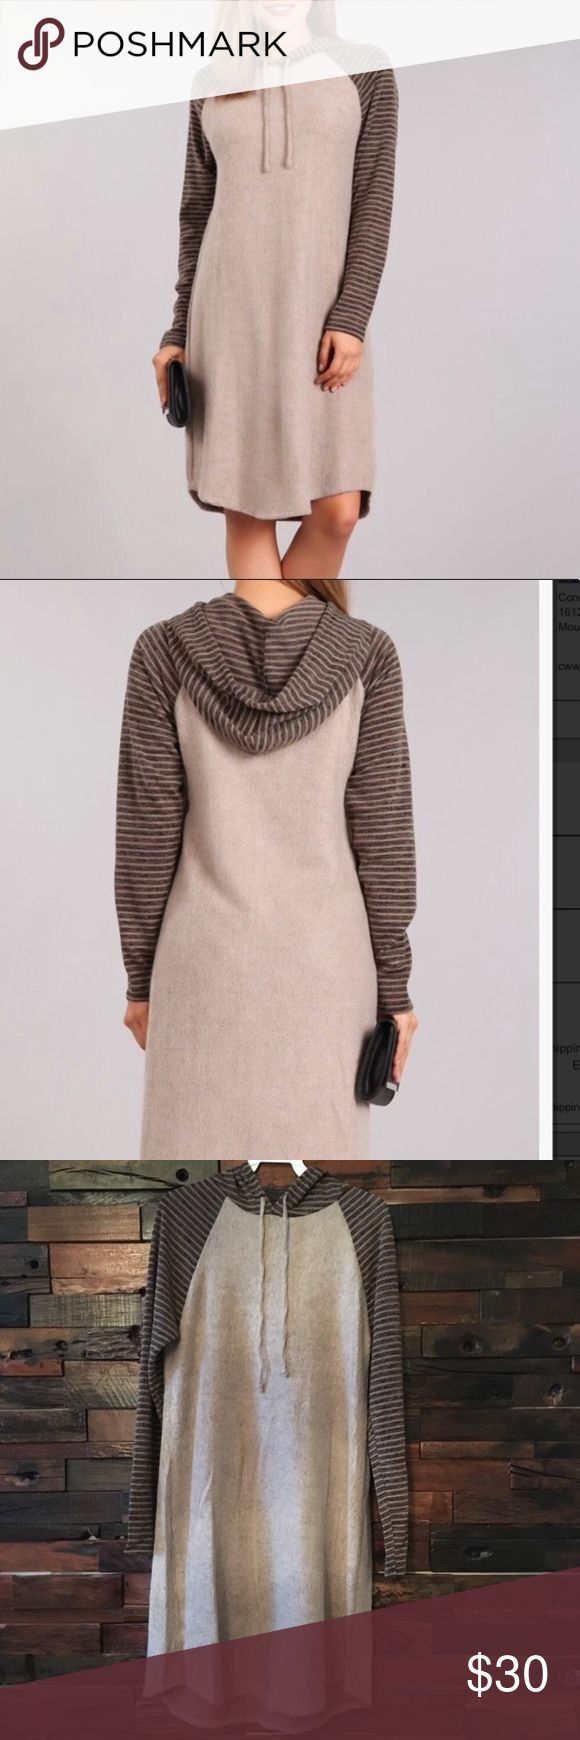 """Hoodie dress Mocha colored hoodie dress. Striped long sleeved detail. Softest dress ever!!!! Or you can wear as a long top with leggings.  Length is 36"""". large fits 8-12. 96% polyester, 4% spandex. Dresses"""